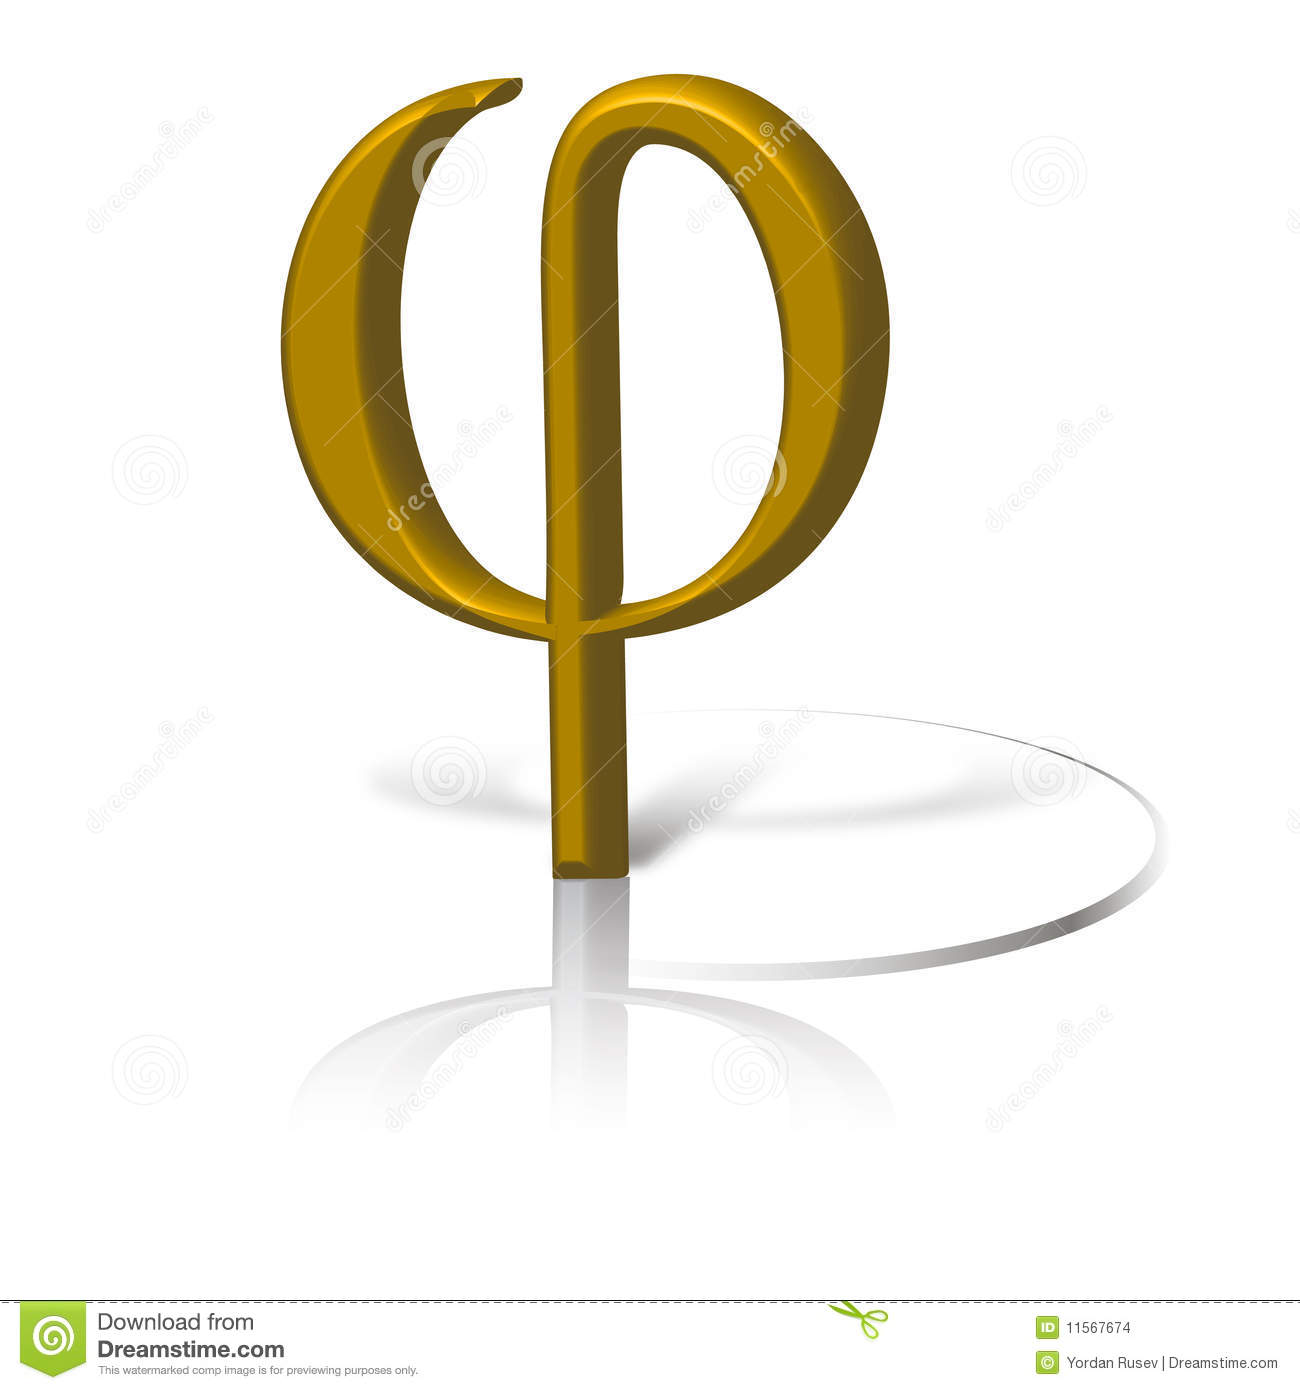 Golden Section Symbol Phi Stock Images  Image 11567674. Repurposed Wood Signs Of Stroke. Crafty Signs Of Stroke. Coordinated Signs. Offer Signs Of Stroke. Tumblr Band Signs. Fog Signs Of Stroke. Cnc Signs. Easter Egg Hunt Signs Of Stroke